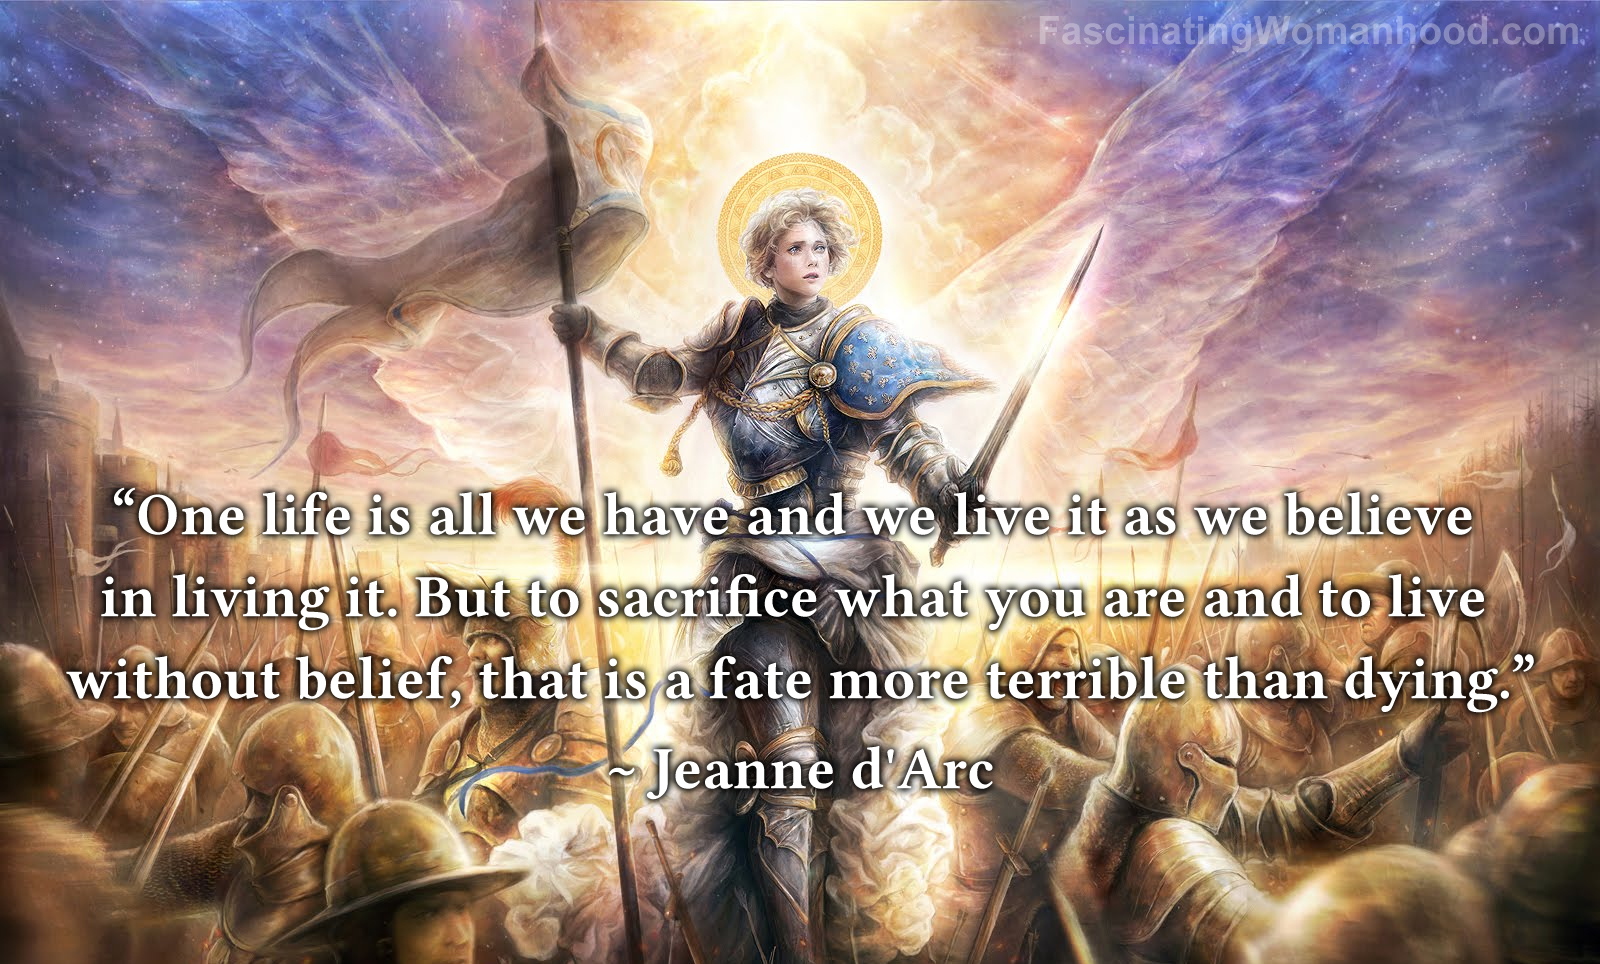 A Quote by Jeanne d'Arc.jpg